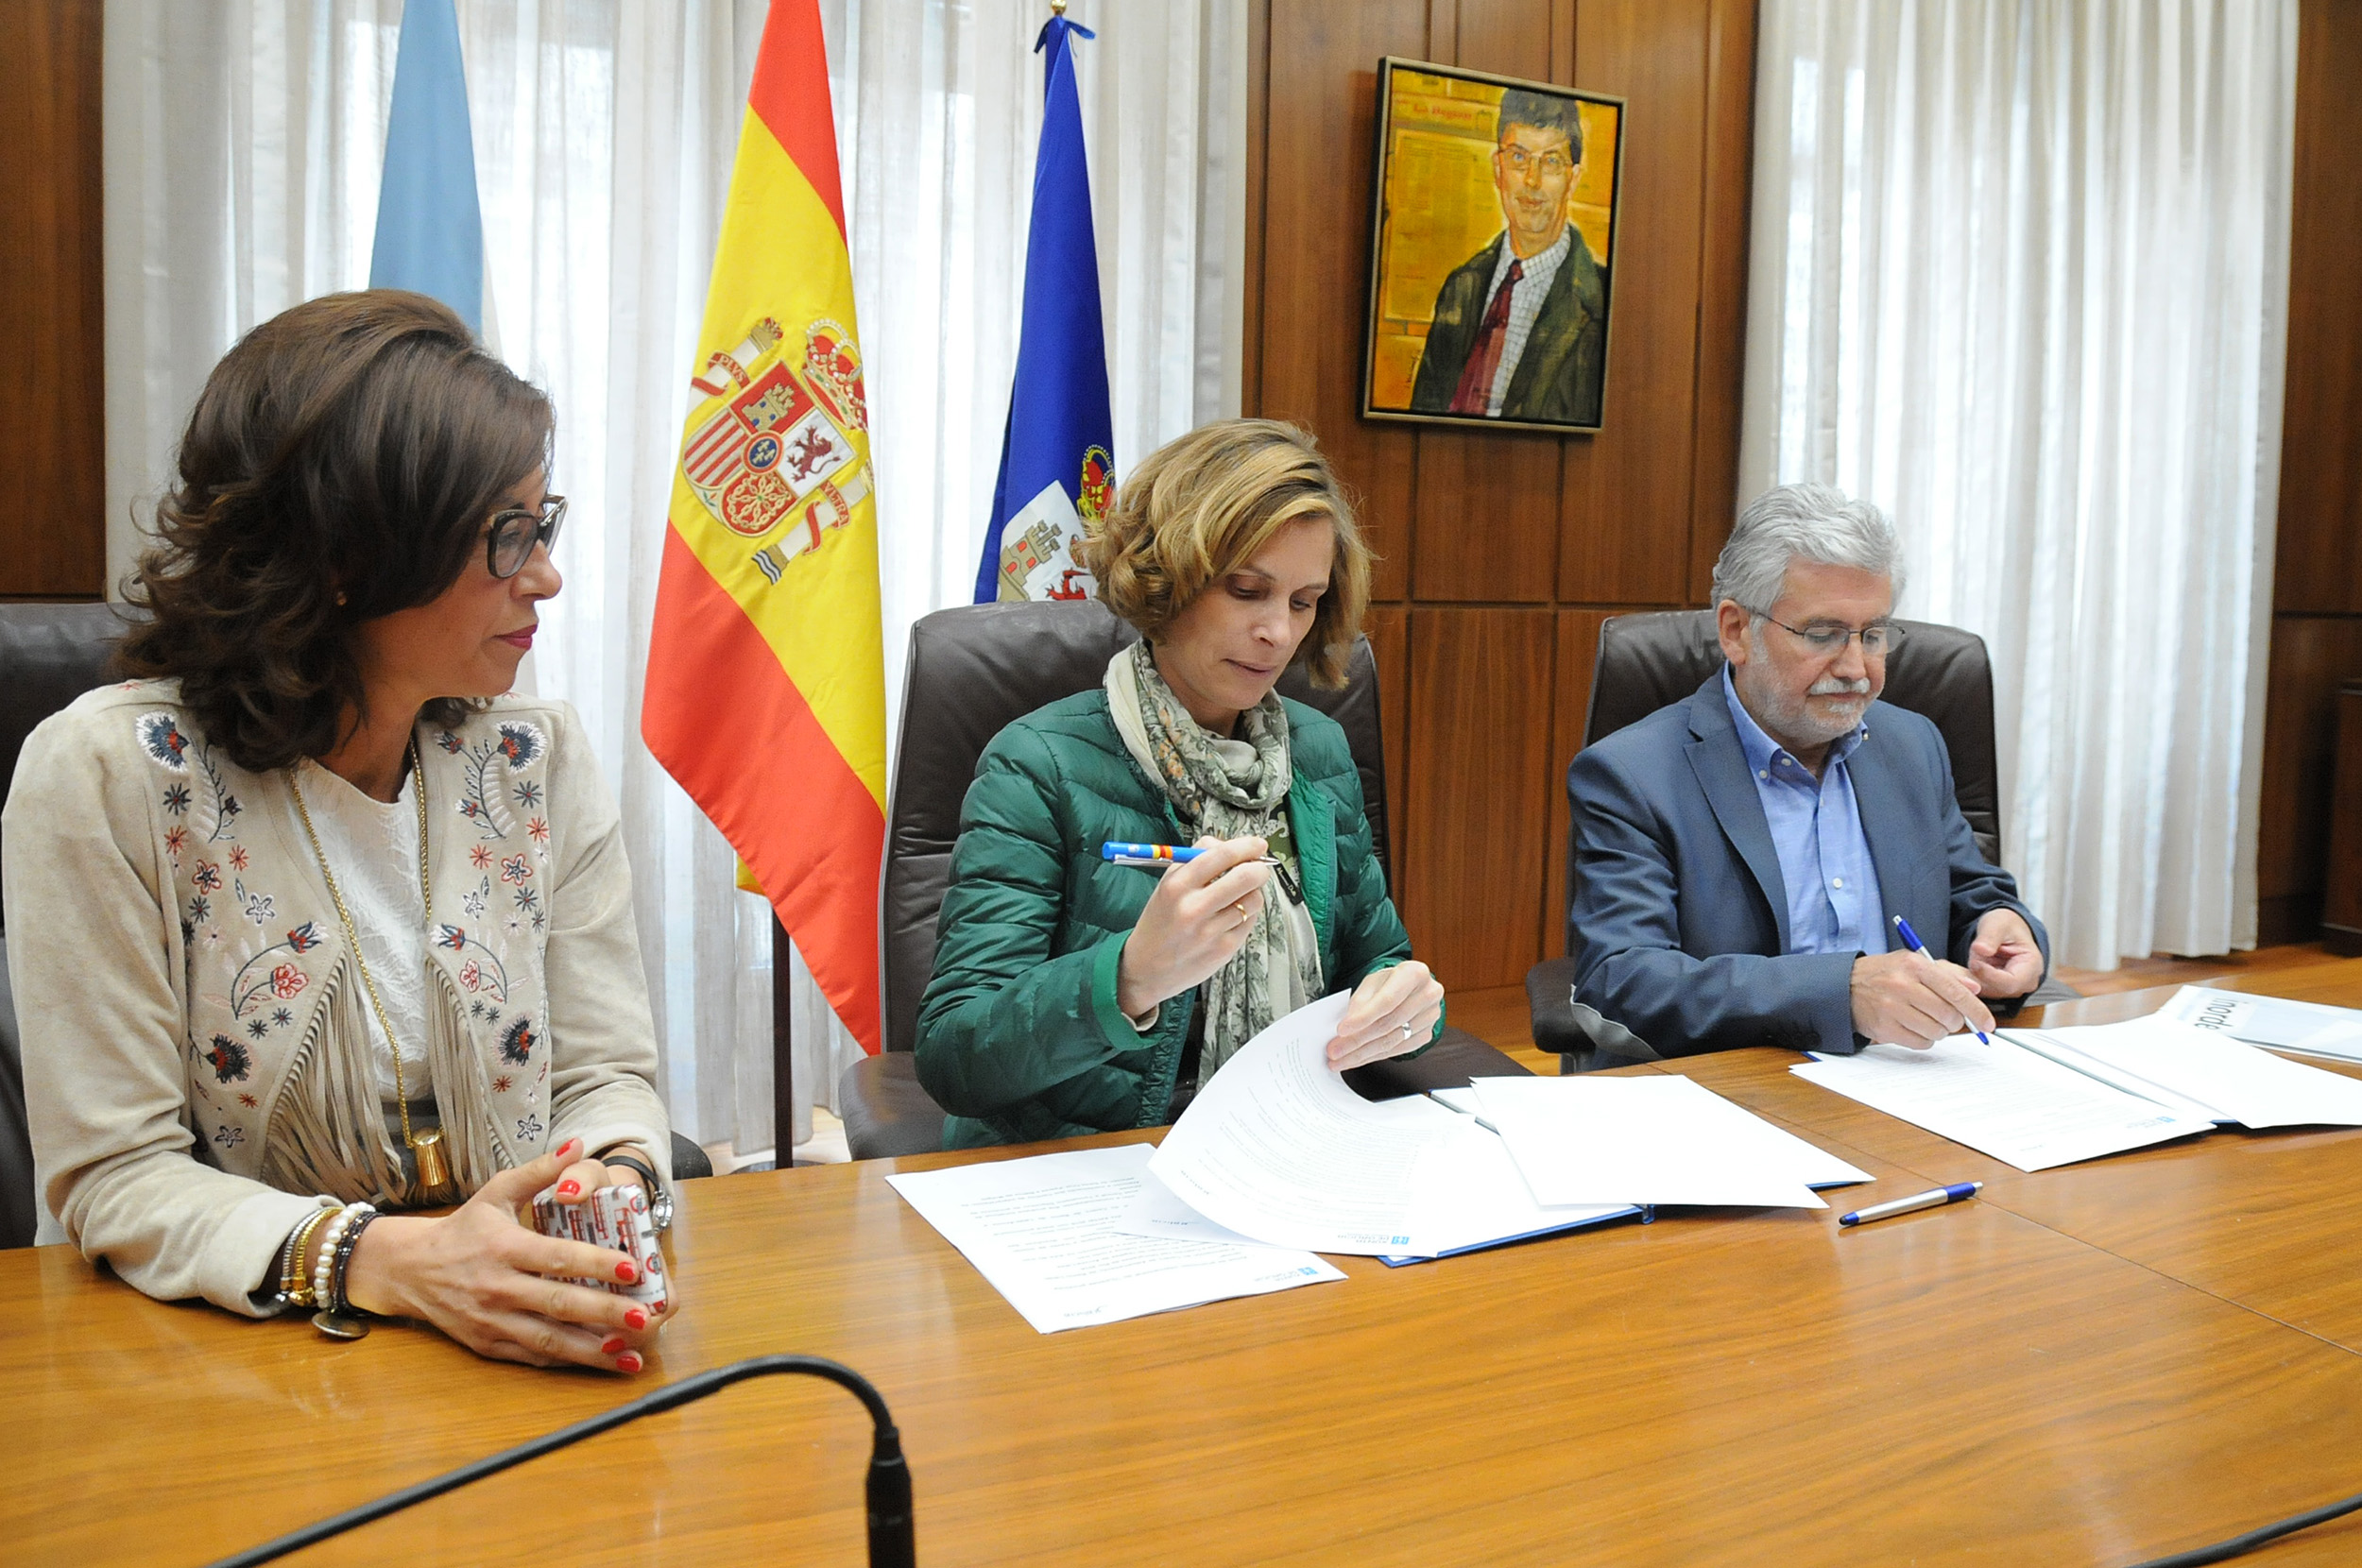 [:es]Turismo e Inorde firman un convenio para el impulso de los recursos turísticos ourensanosTurismo e Inorde asinan un convenio para o impulso dos recursos turísticos ourensánsTourism and INORDE sign an agreement for the promotion of tourism resources in Ourense